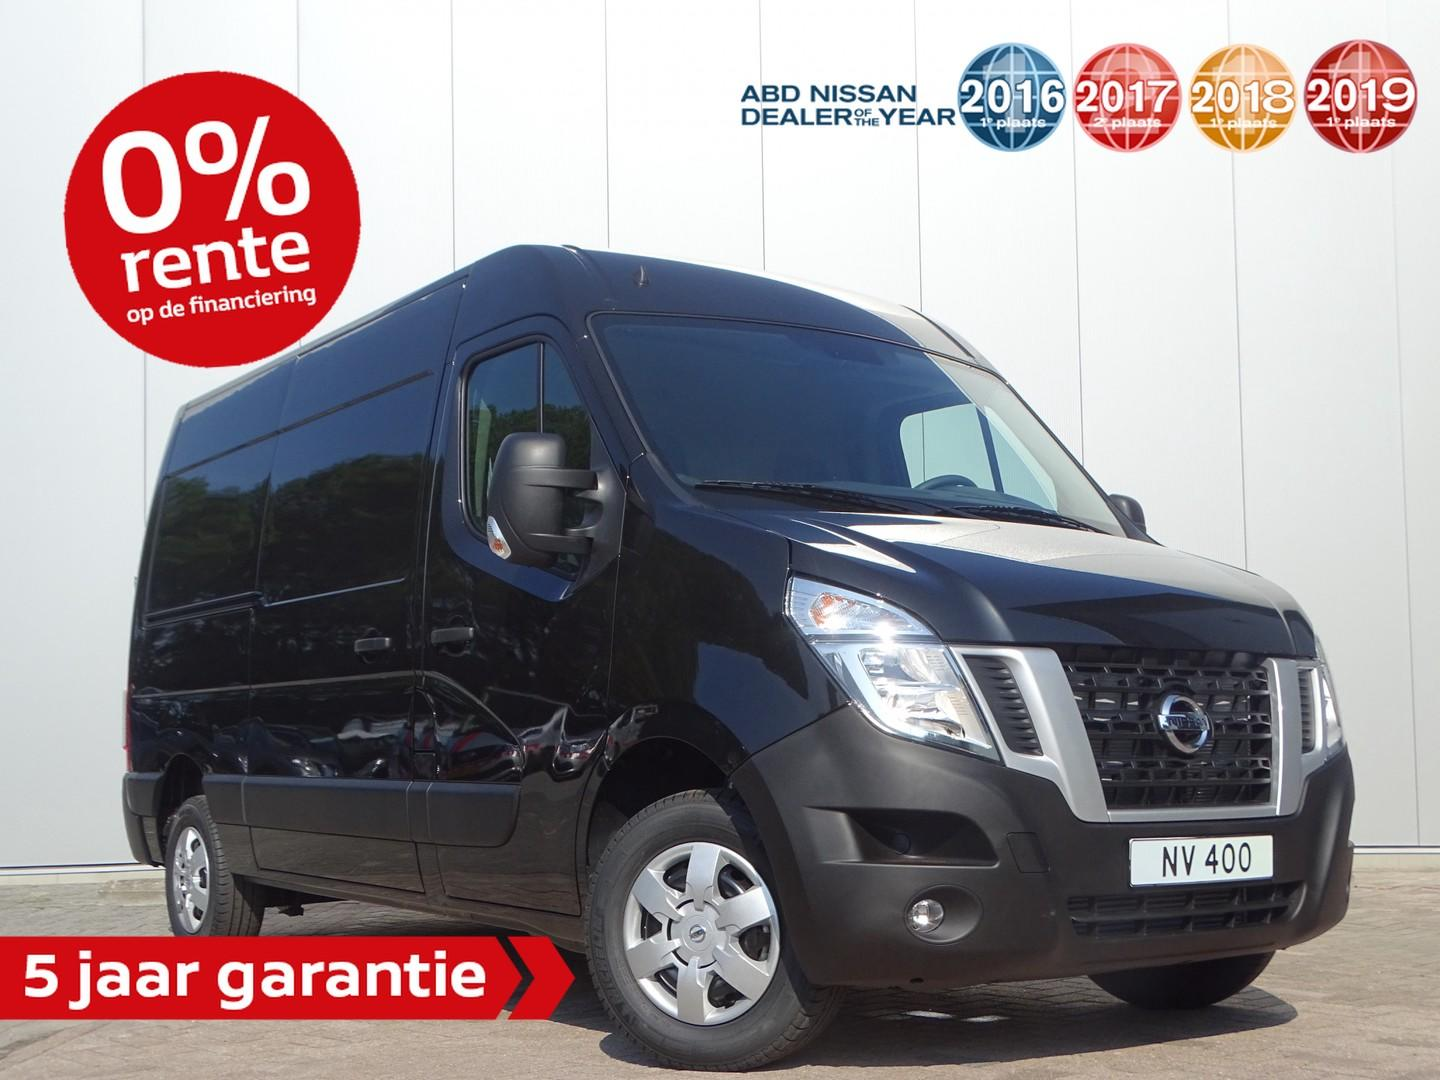 Nissan Nv400 2.3 dci l2h2 130pk optima €8.200,- euro korting!